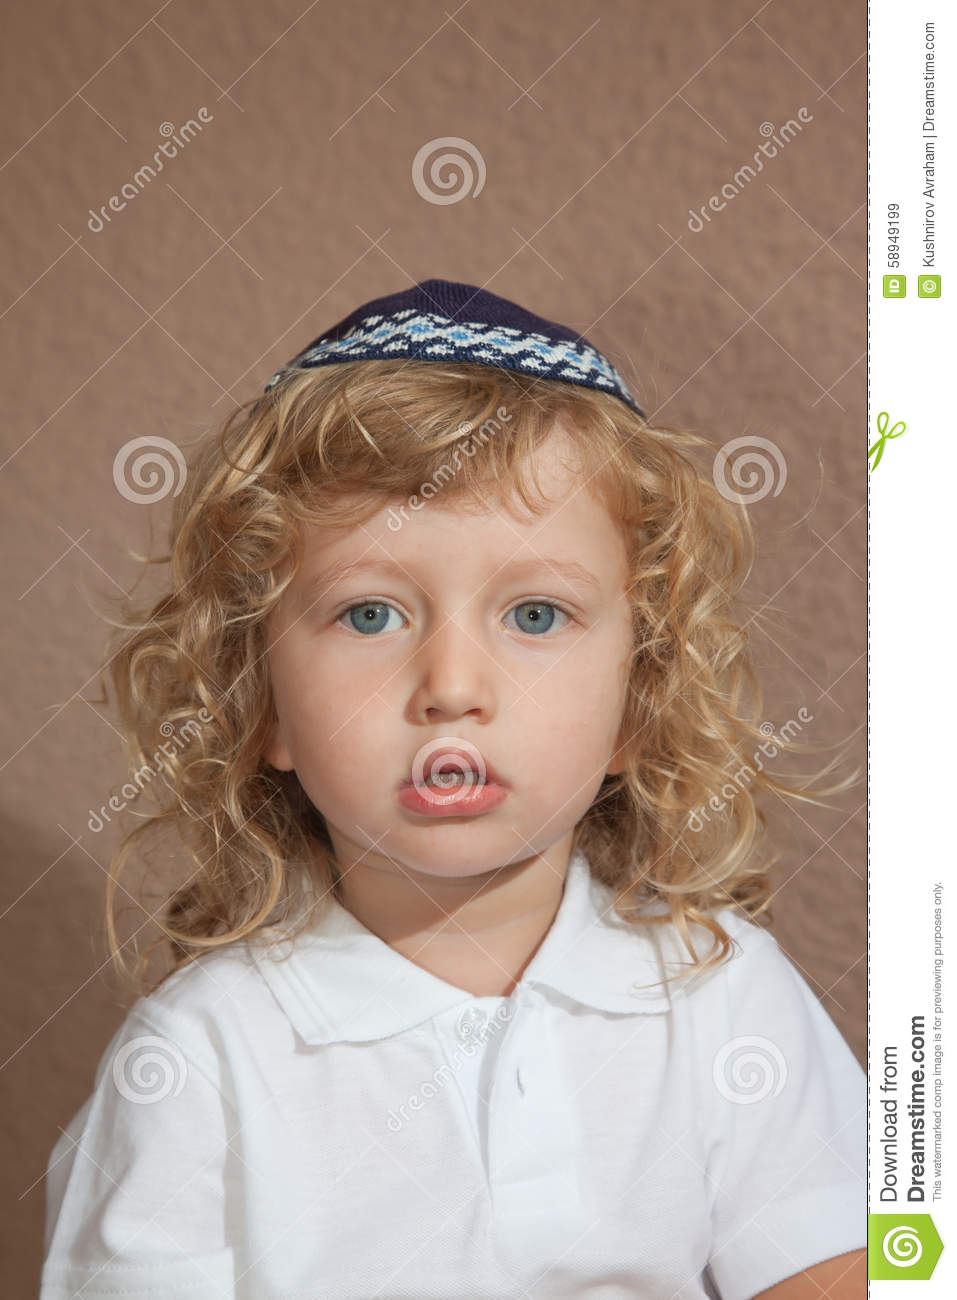 The Little Boy With Blue Eyes In Jewish Knitted Skullcap